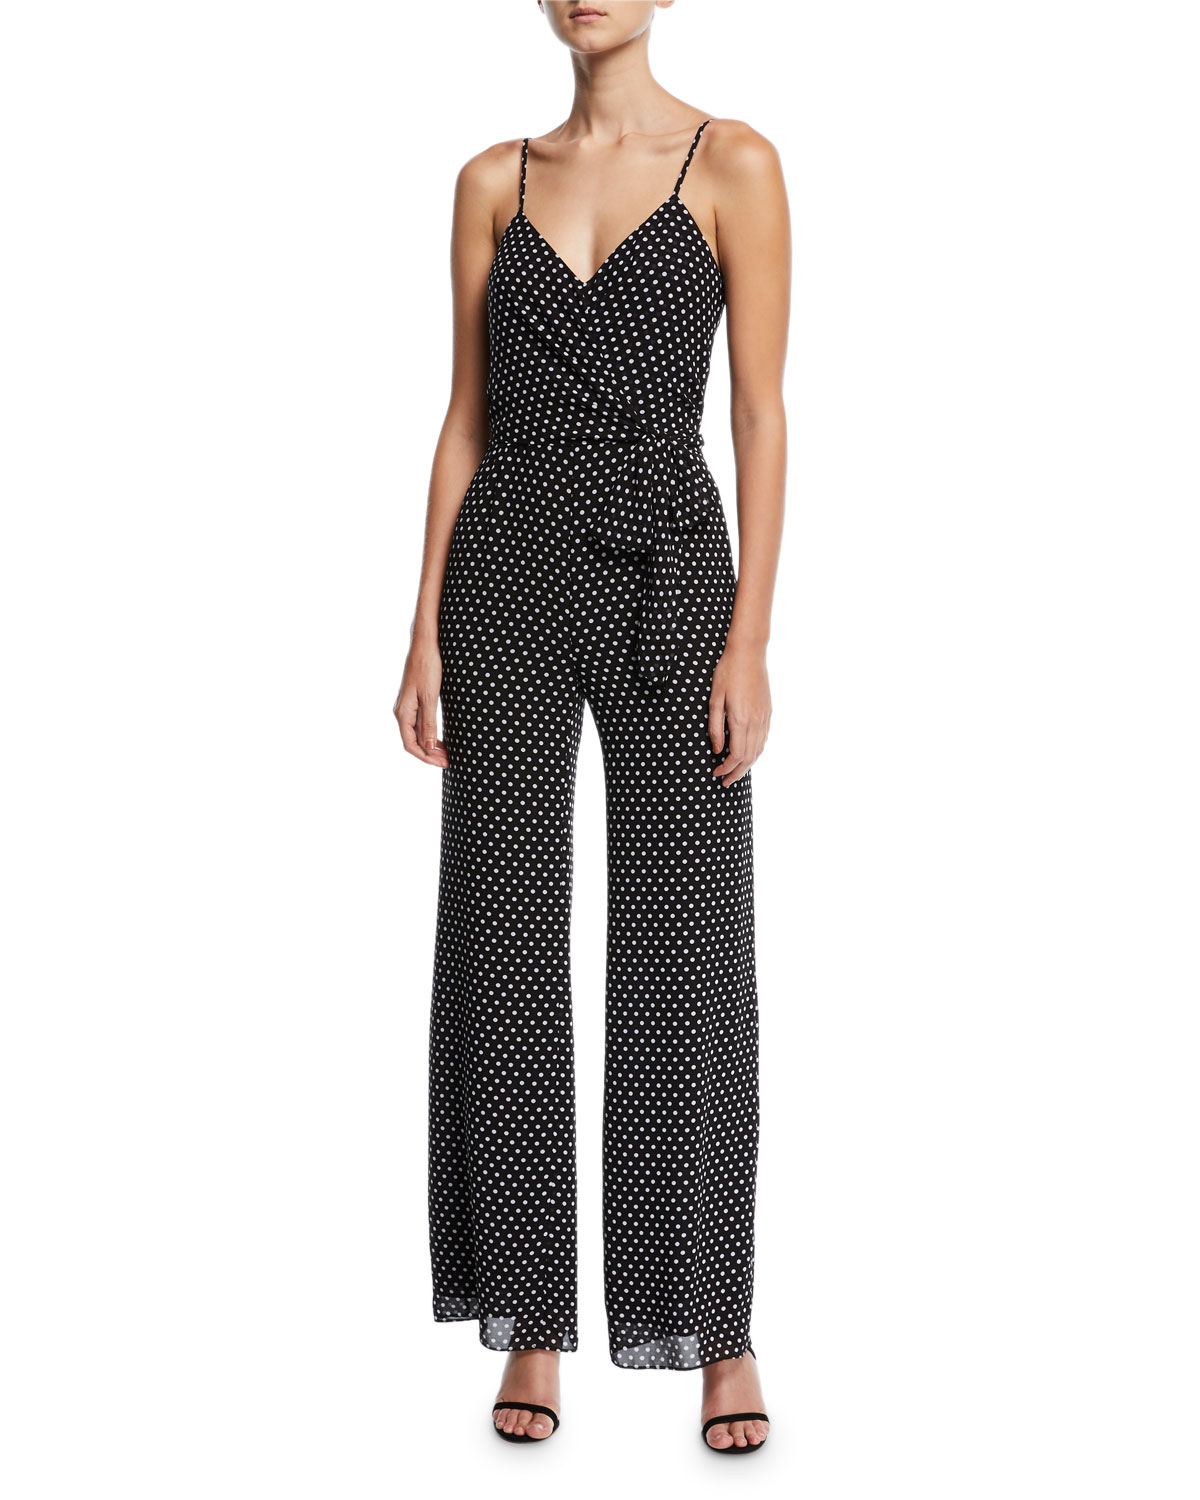 6f268f4a28a4 MICHAEL Michael Kors Simple Dot Faux-Wrap Jumpsuit